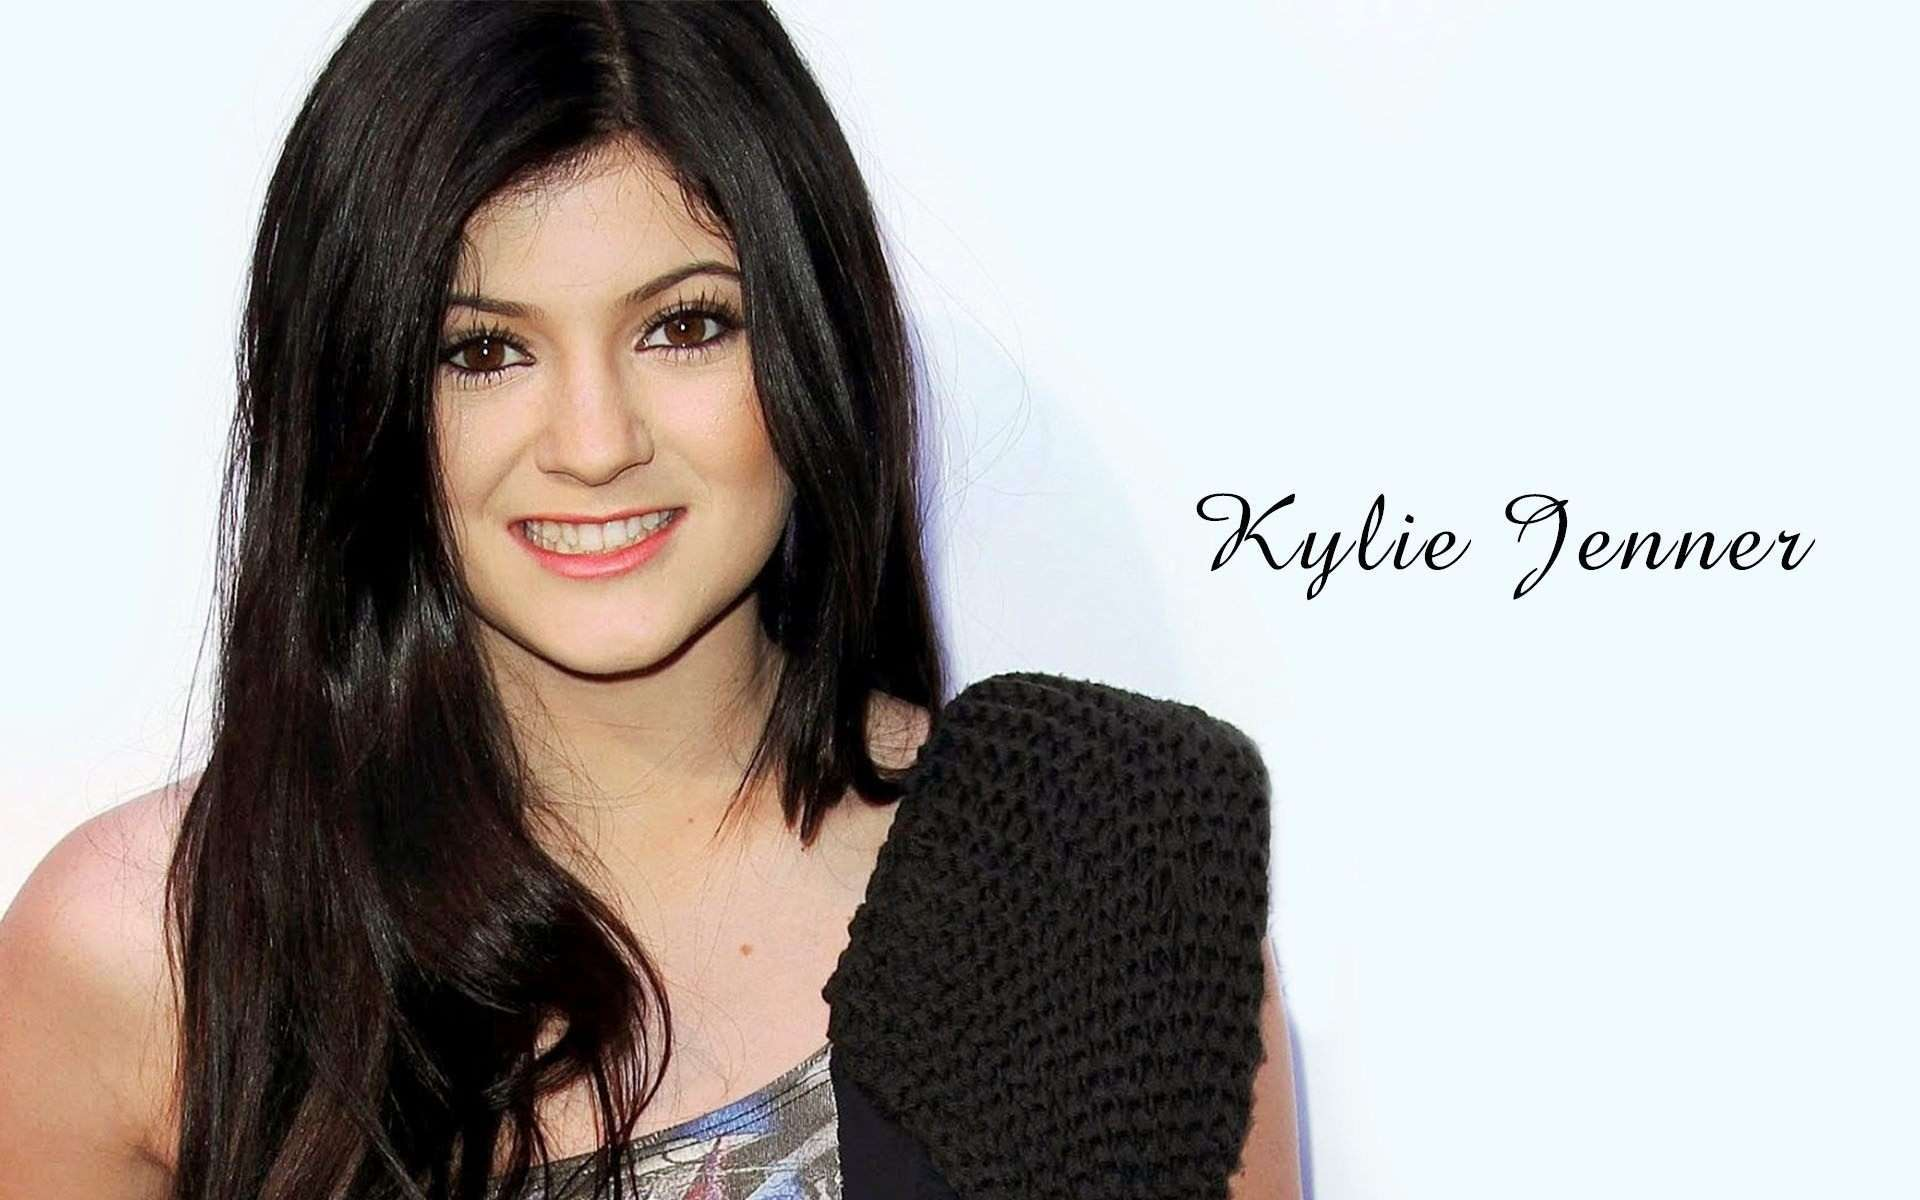 New Kylie Jenner Wallpapers, View #39723457 Kylie Jenner Wallpapers